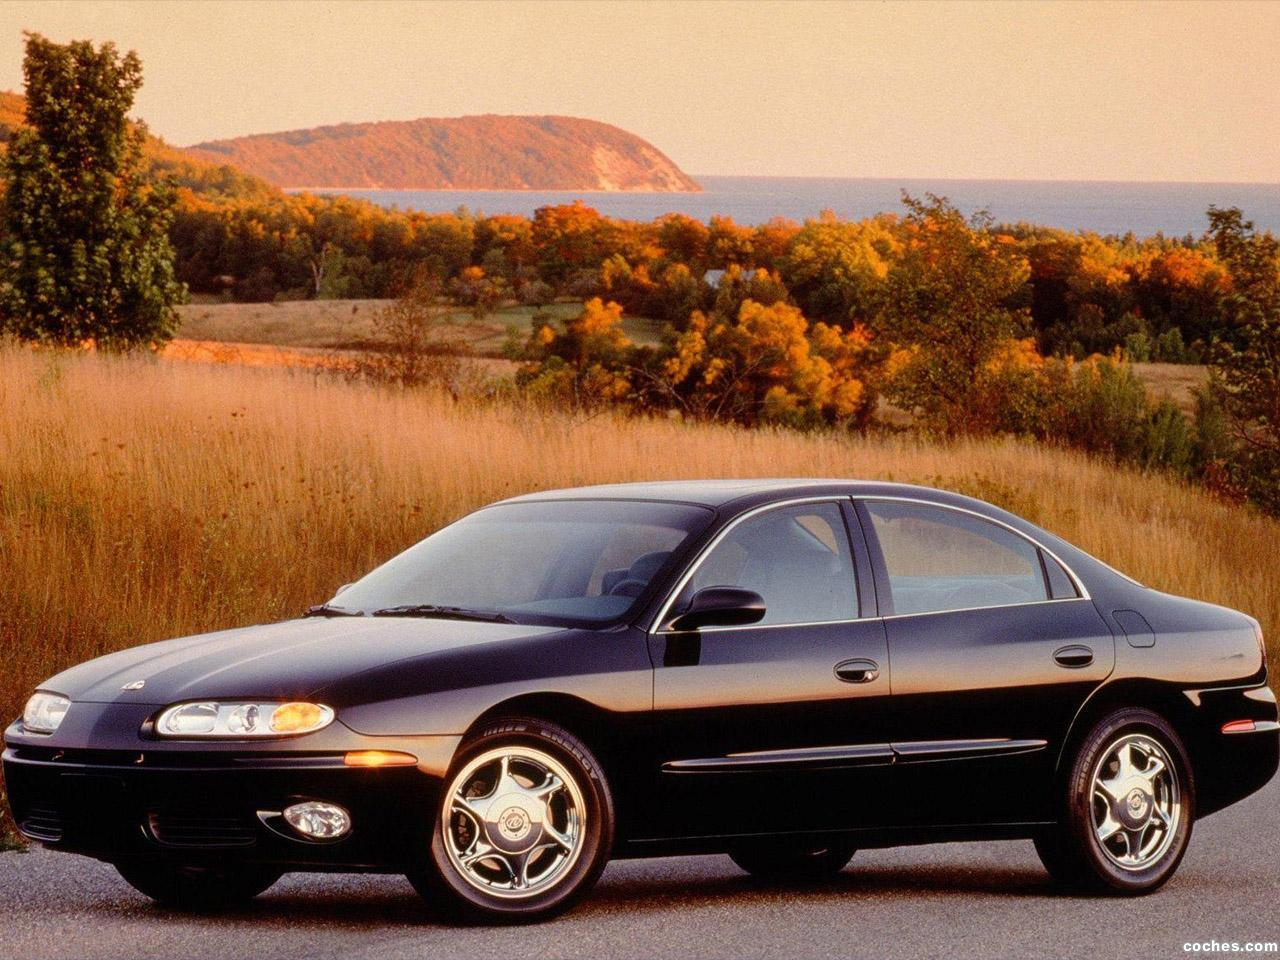 oldsmobile aurora related images start 400 weili. Black Bedroom Furniture Sets. Home Design Ideas